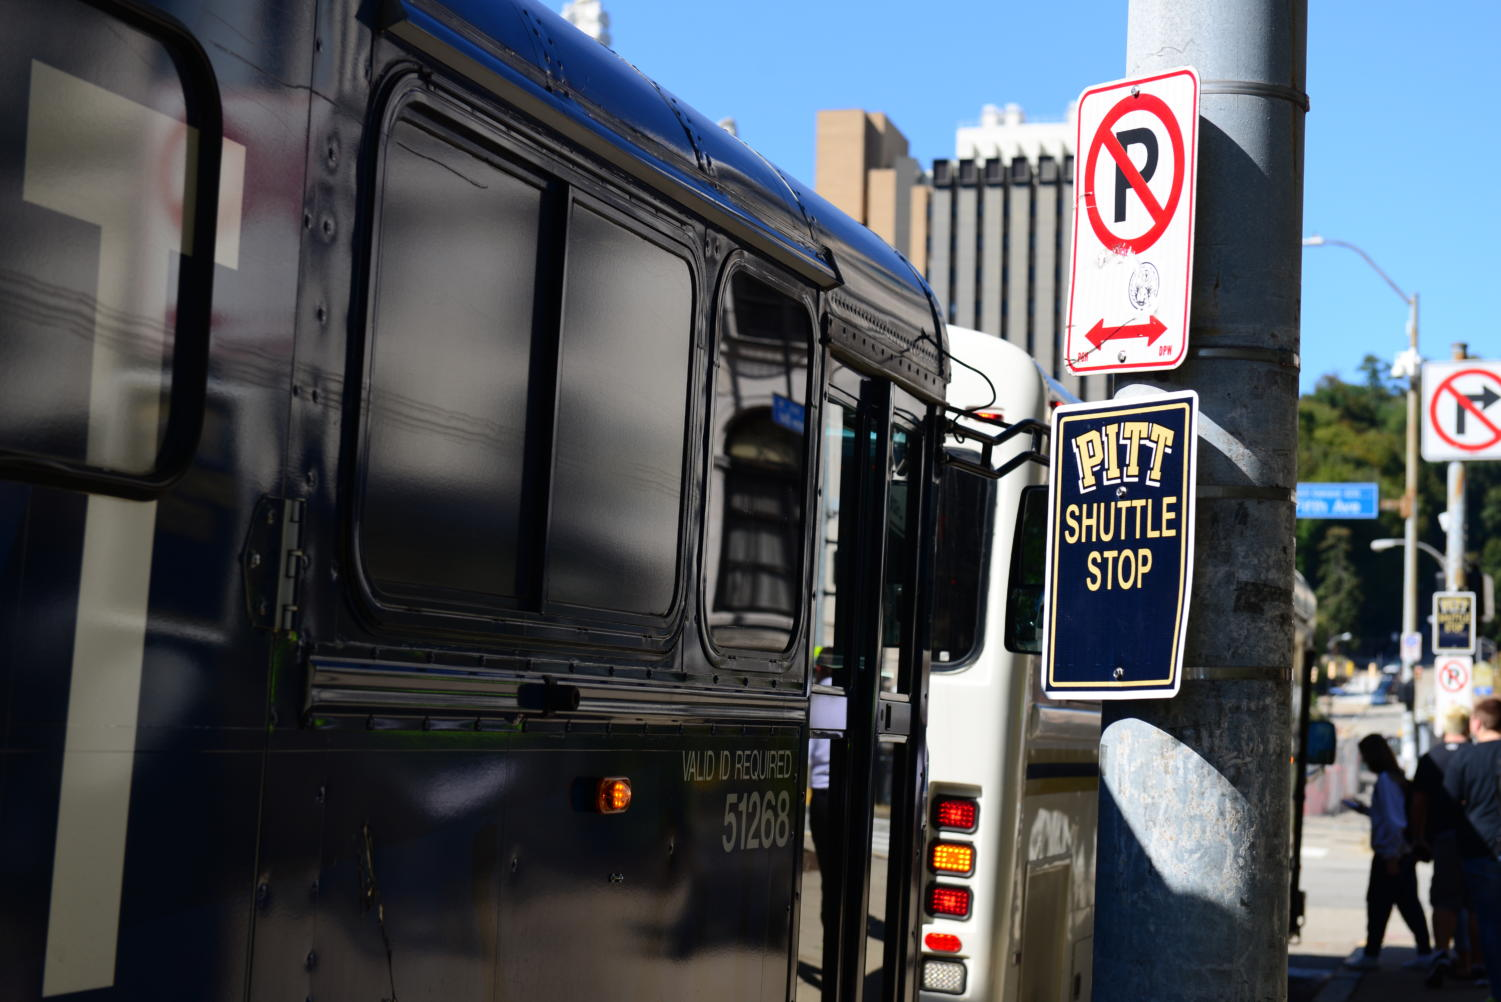 The shuttle stop located at Fifth and Bigelow will relocate to Schenley Drive in front of Hillman Library when Bigelow closes next month.